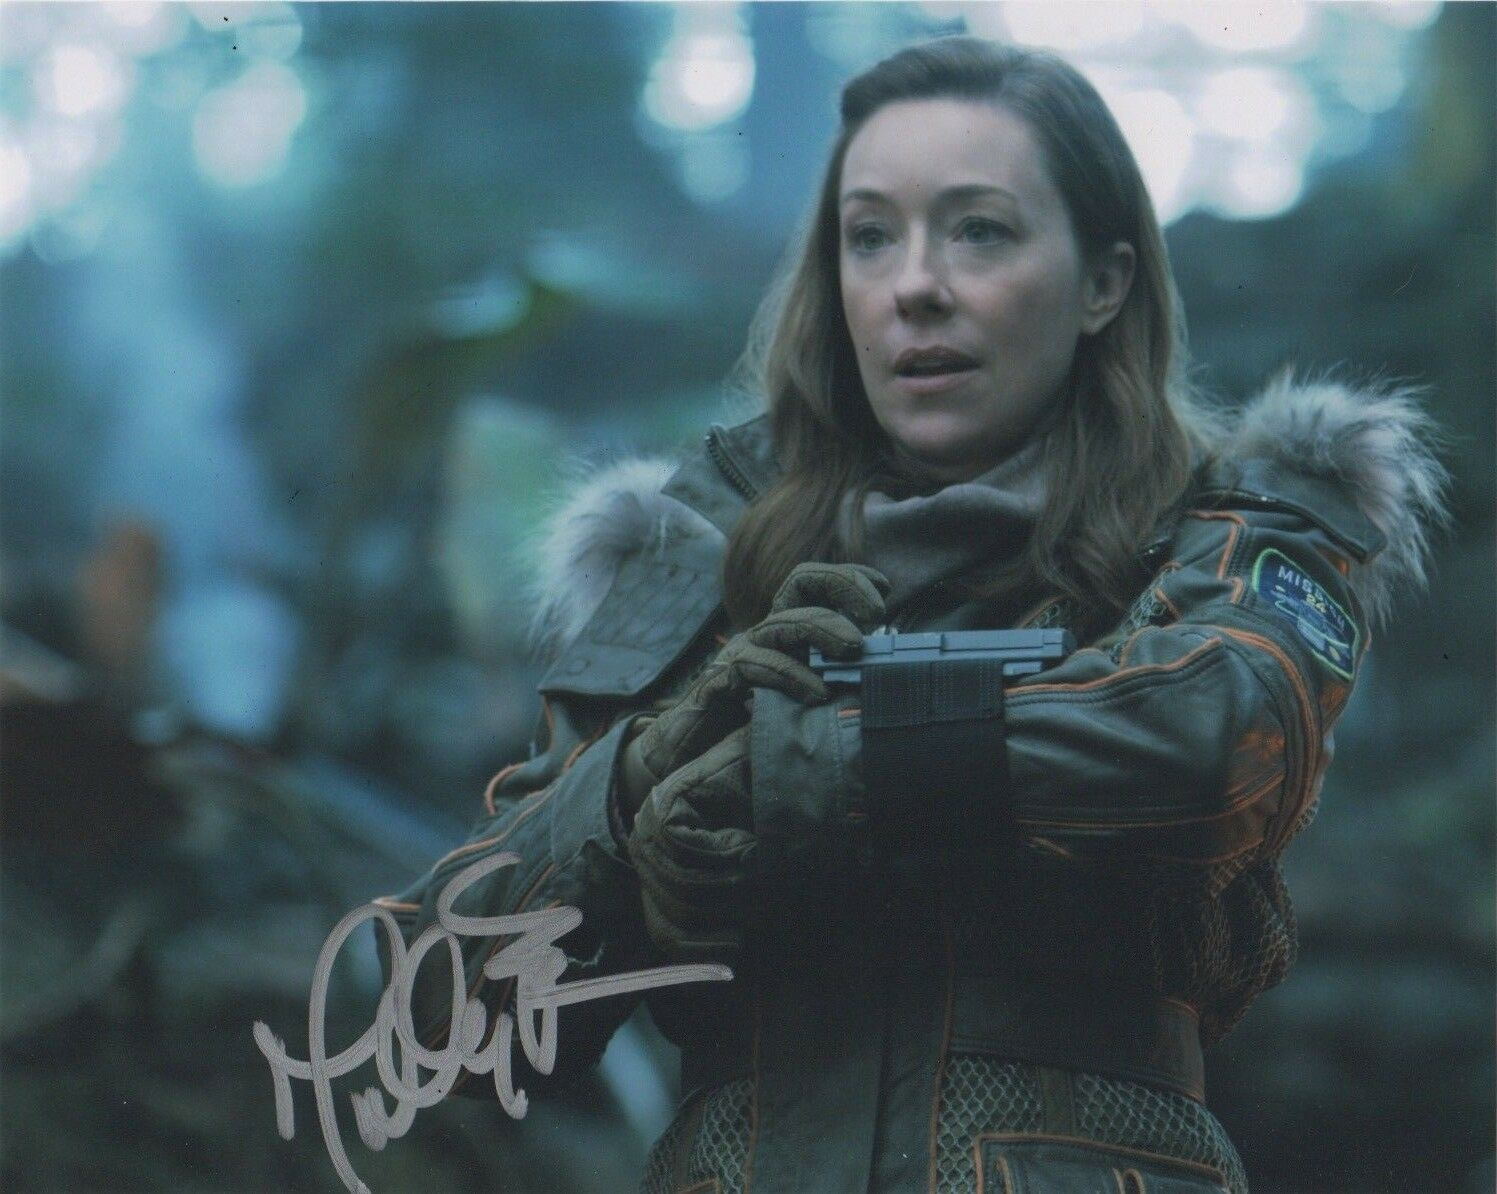 Molly Parker Lost in Space Signed Autograph 8x10 Photo #4 - Outlaw Hobbies Authentic Autographs